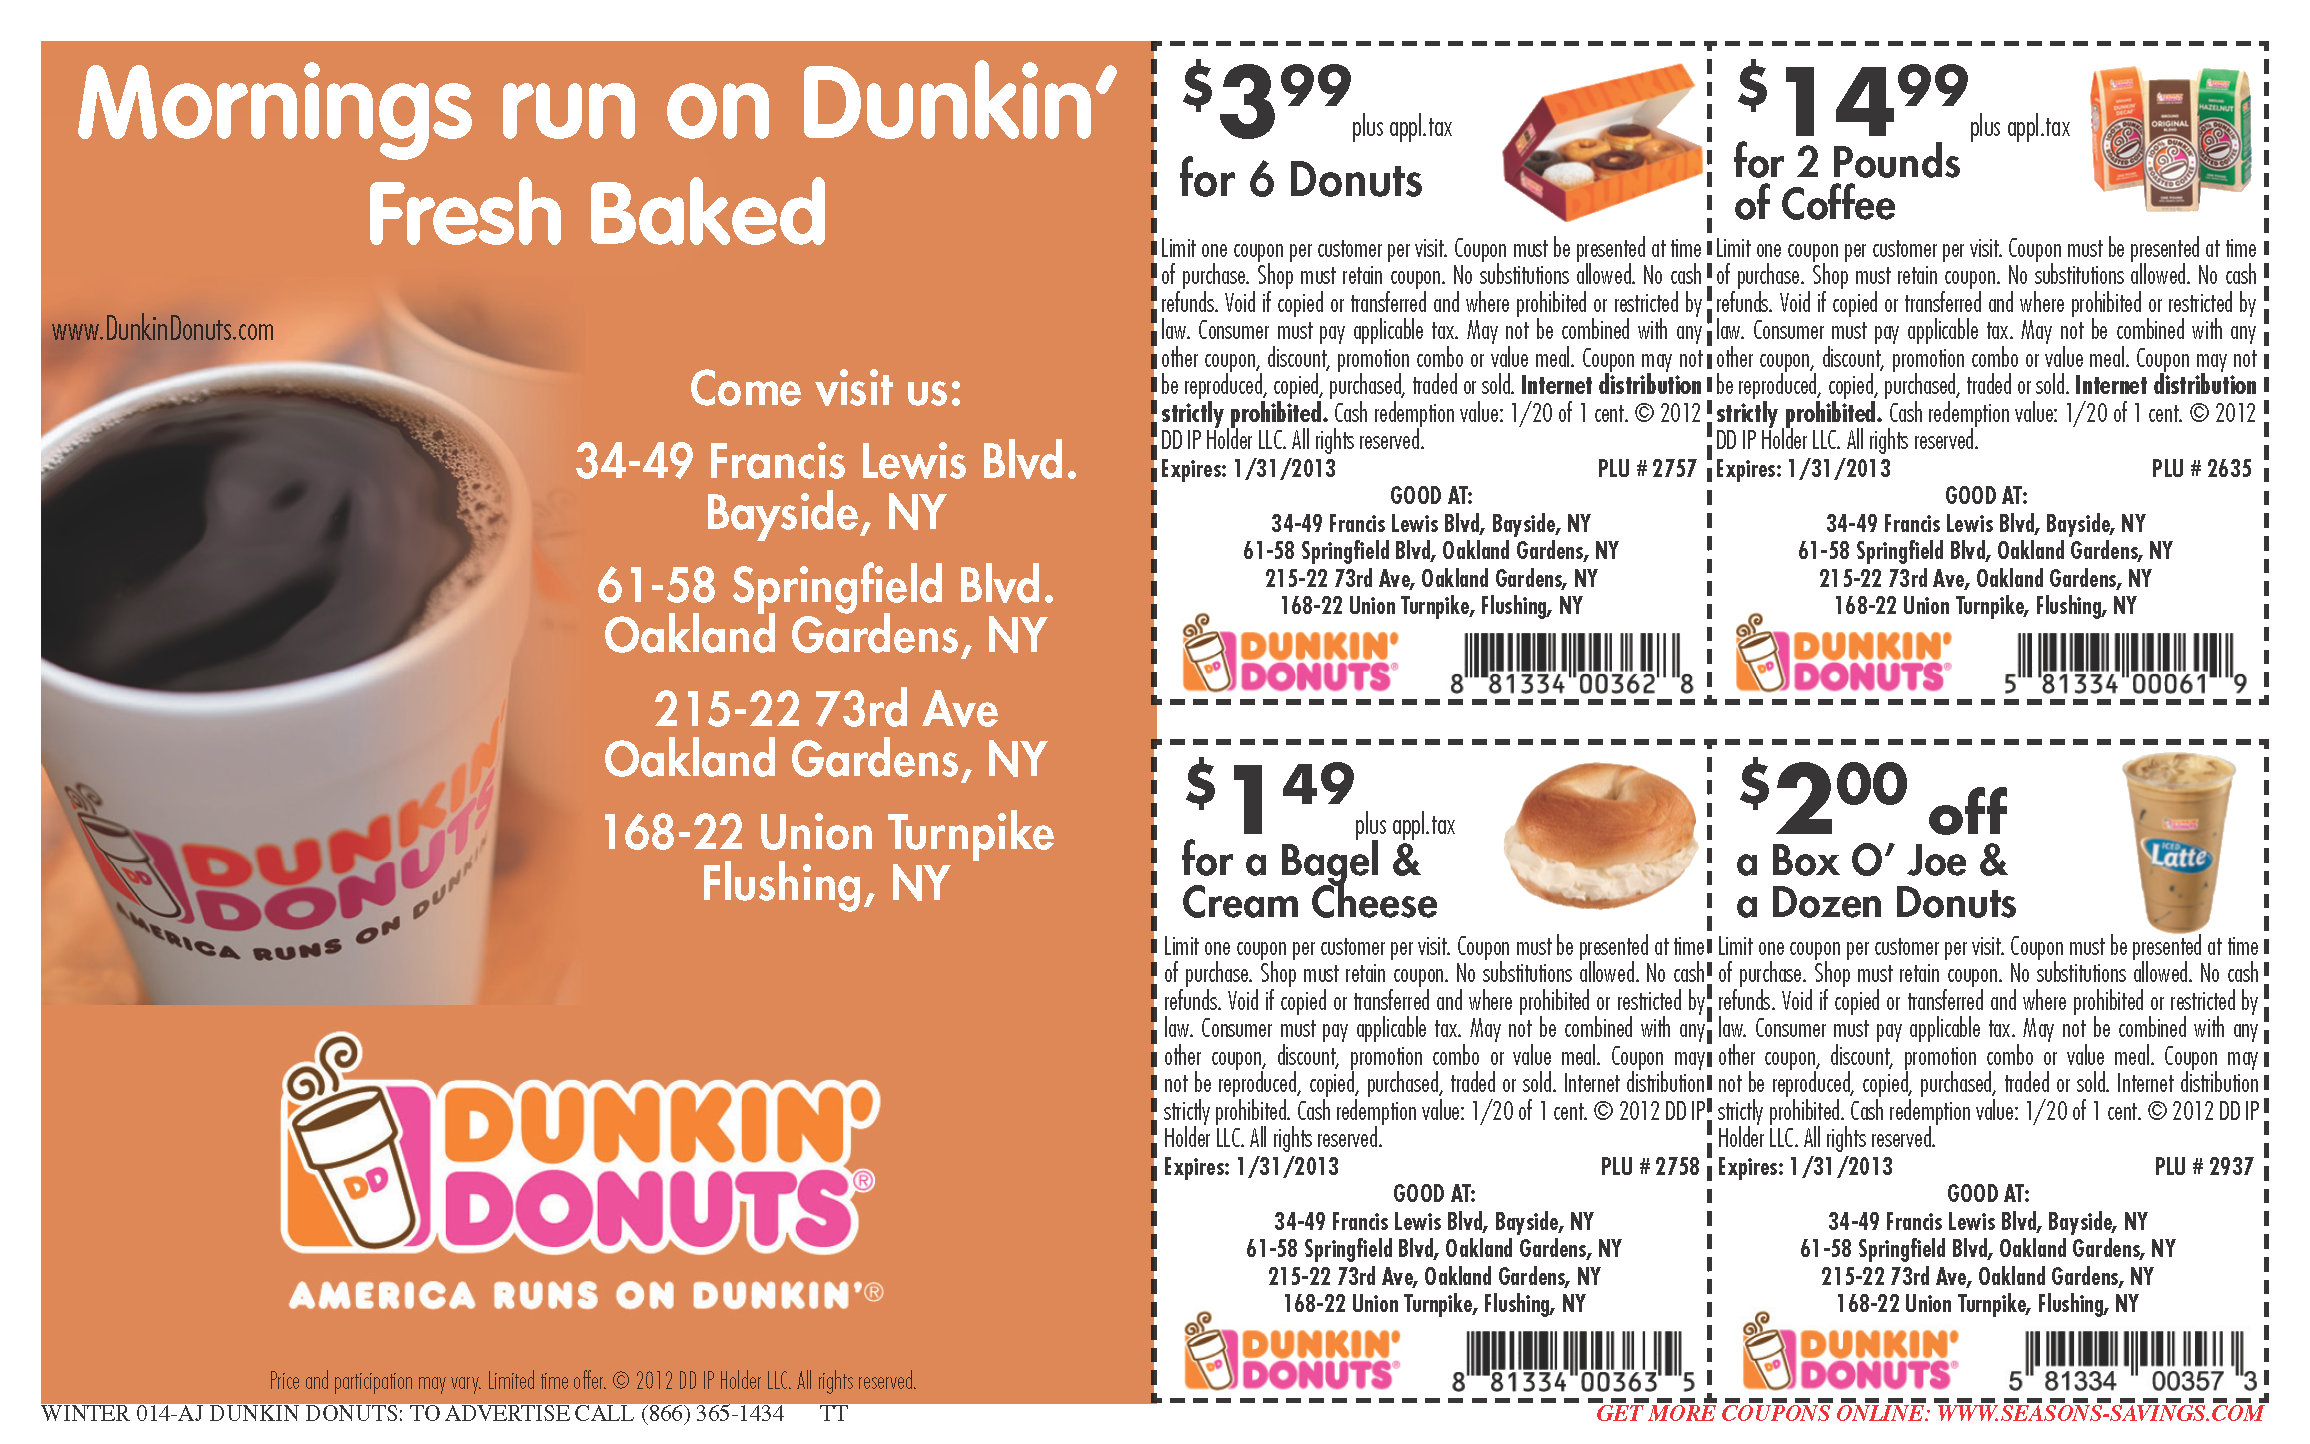 photograph about Dunkin Donuts Coupons Printable identify Legitimate Dunkin Donuts Discount coupons 2019 Printable Coupon codes On the net